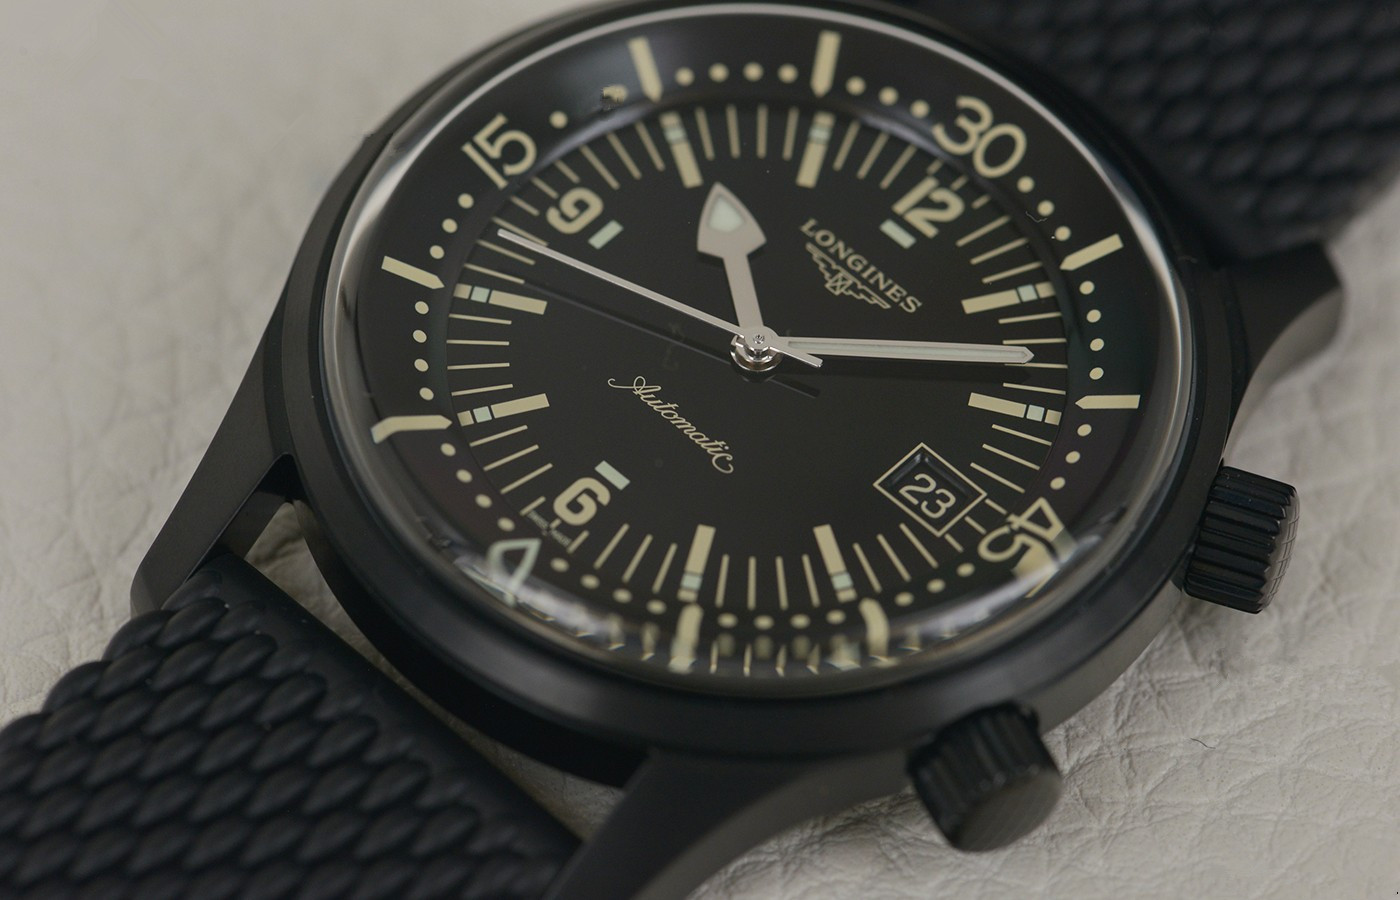 Whole black copy watches are handsome for men.